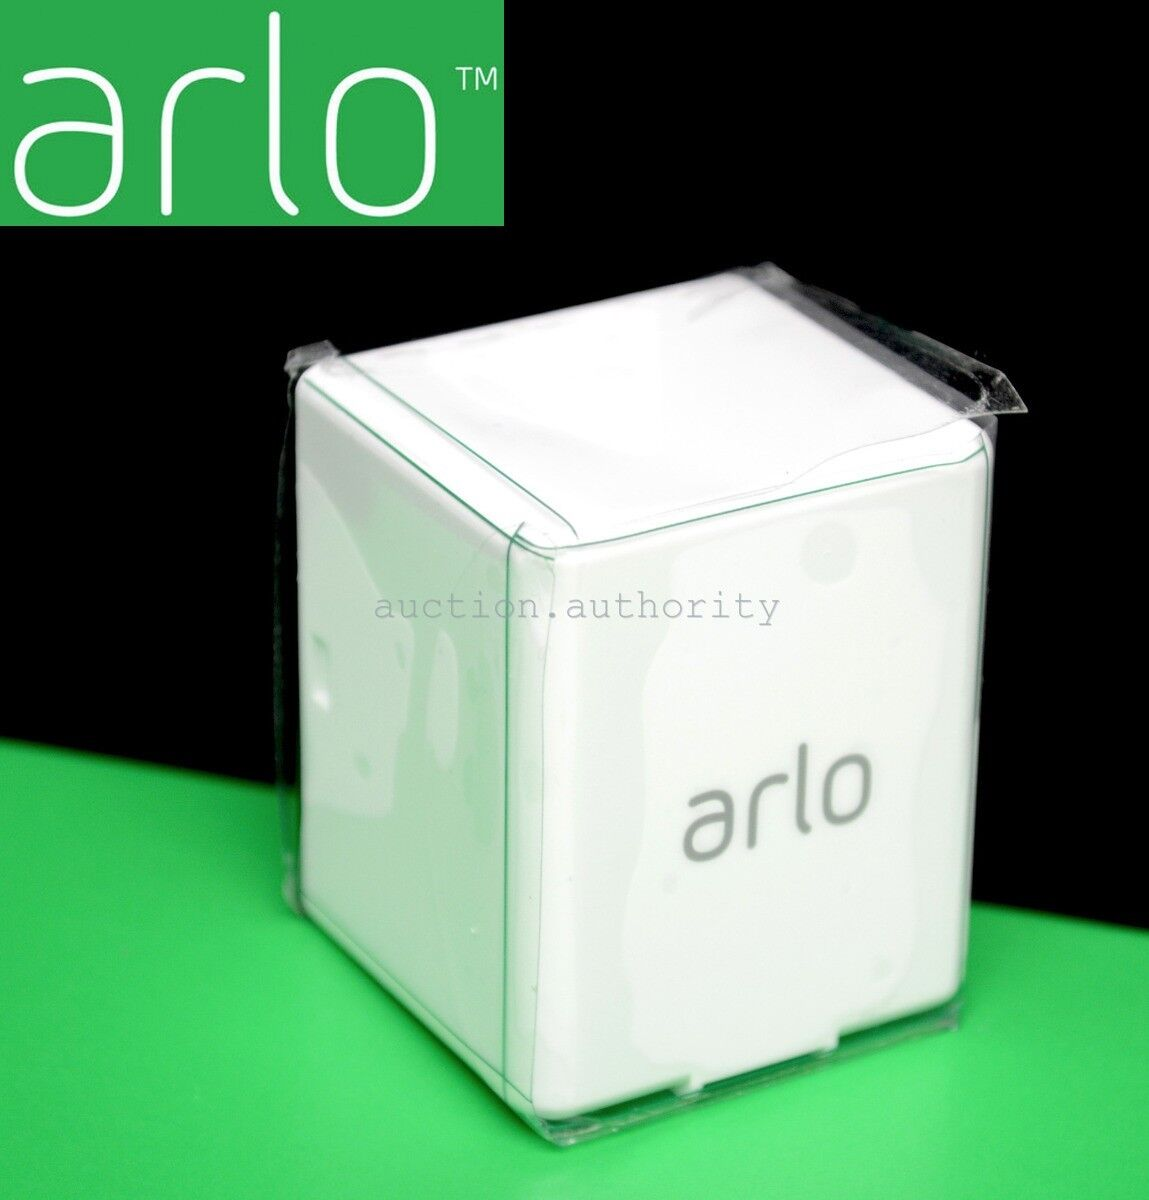 Genuine OEM ARLO Extra Rechargeable Battery for PRO or PRO 2 Camera VMA4400